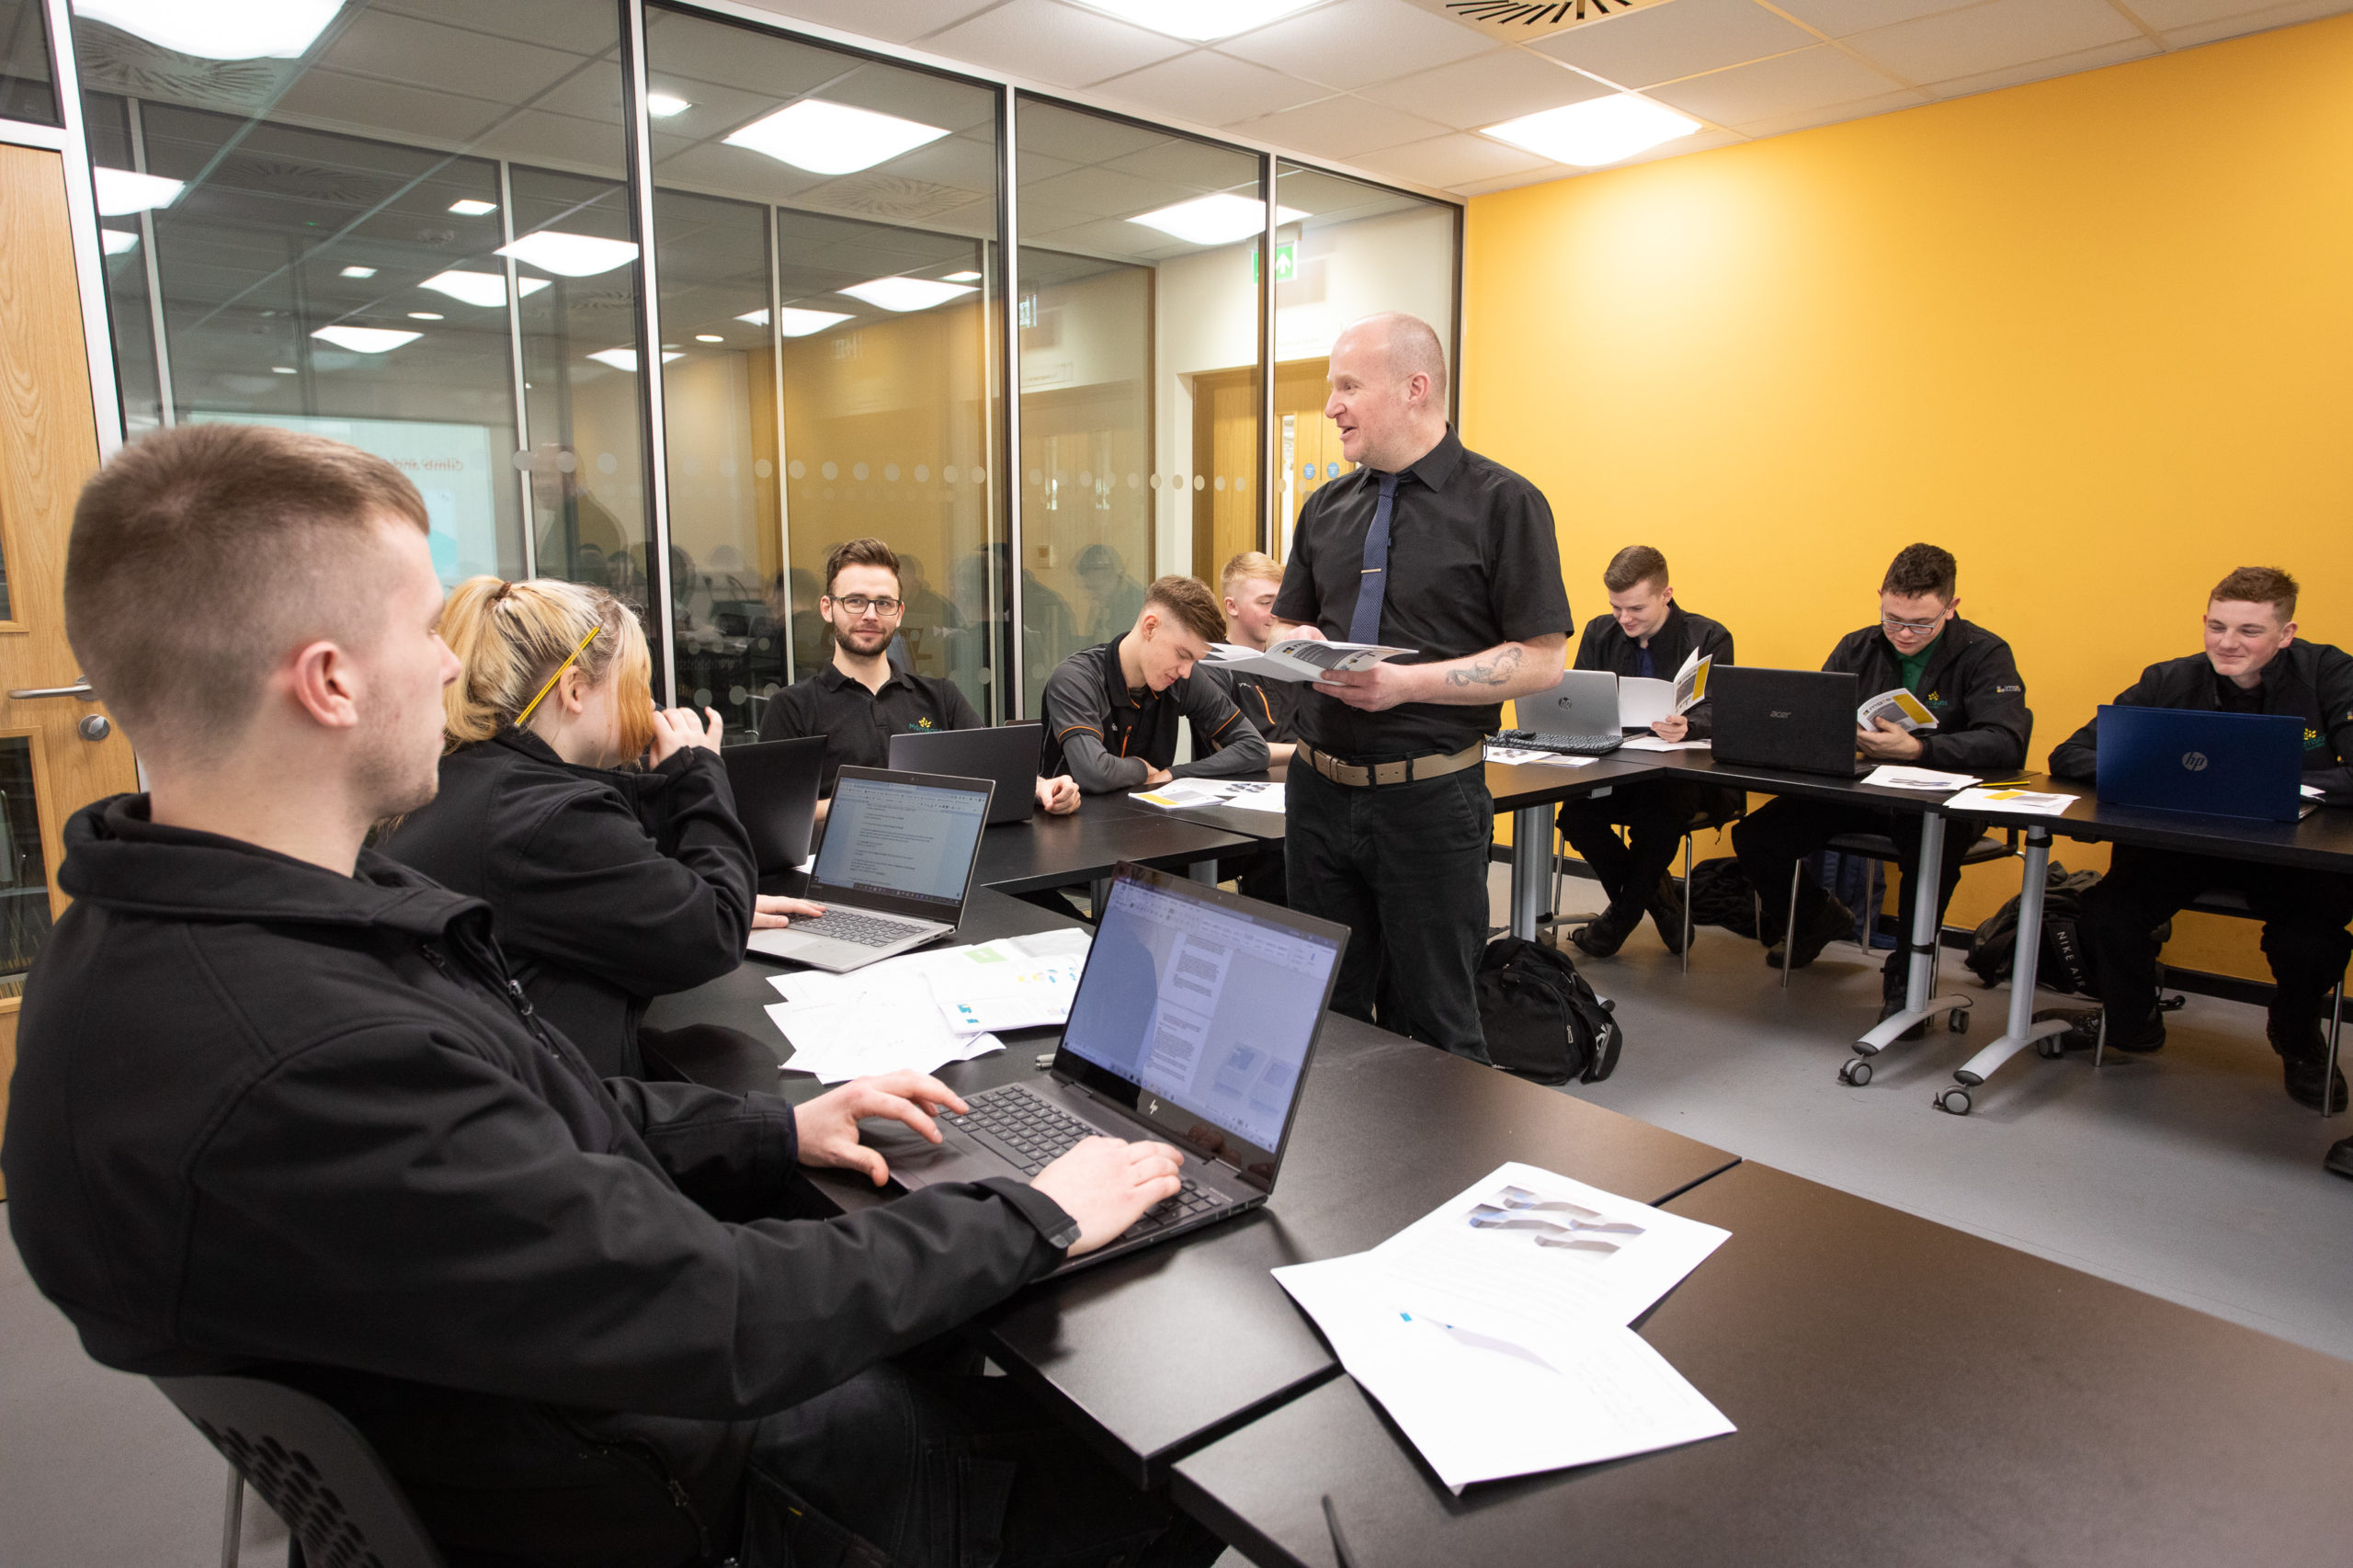 Man teaching Food and Drink Engineering Maintenance Technician apprentices in classroom